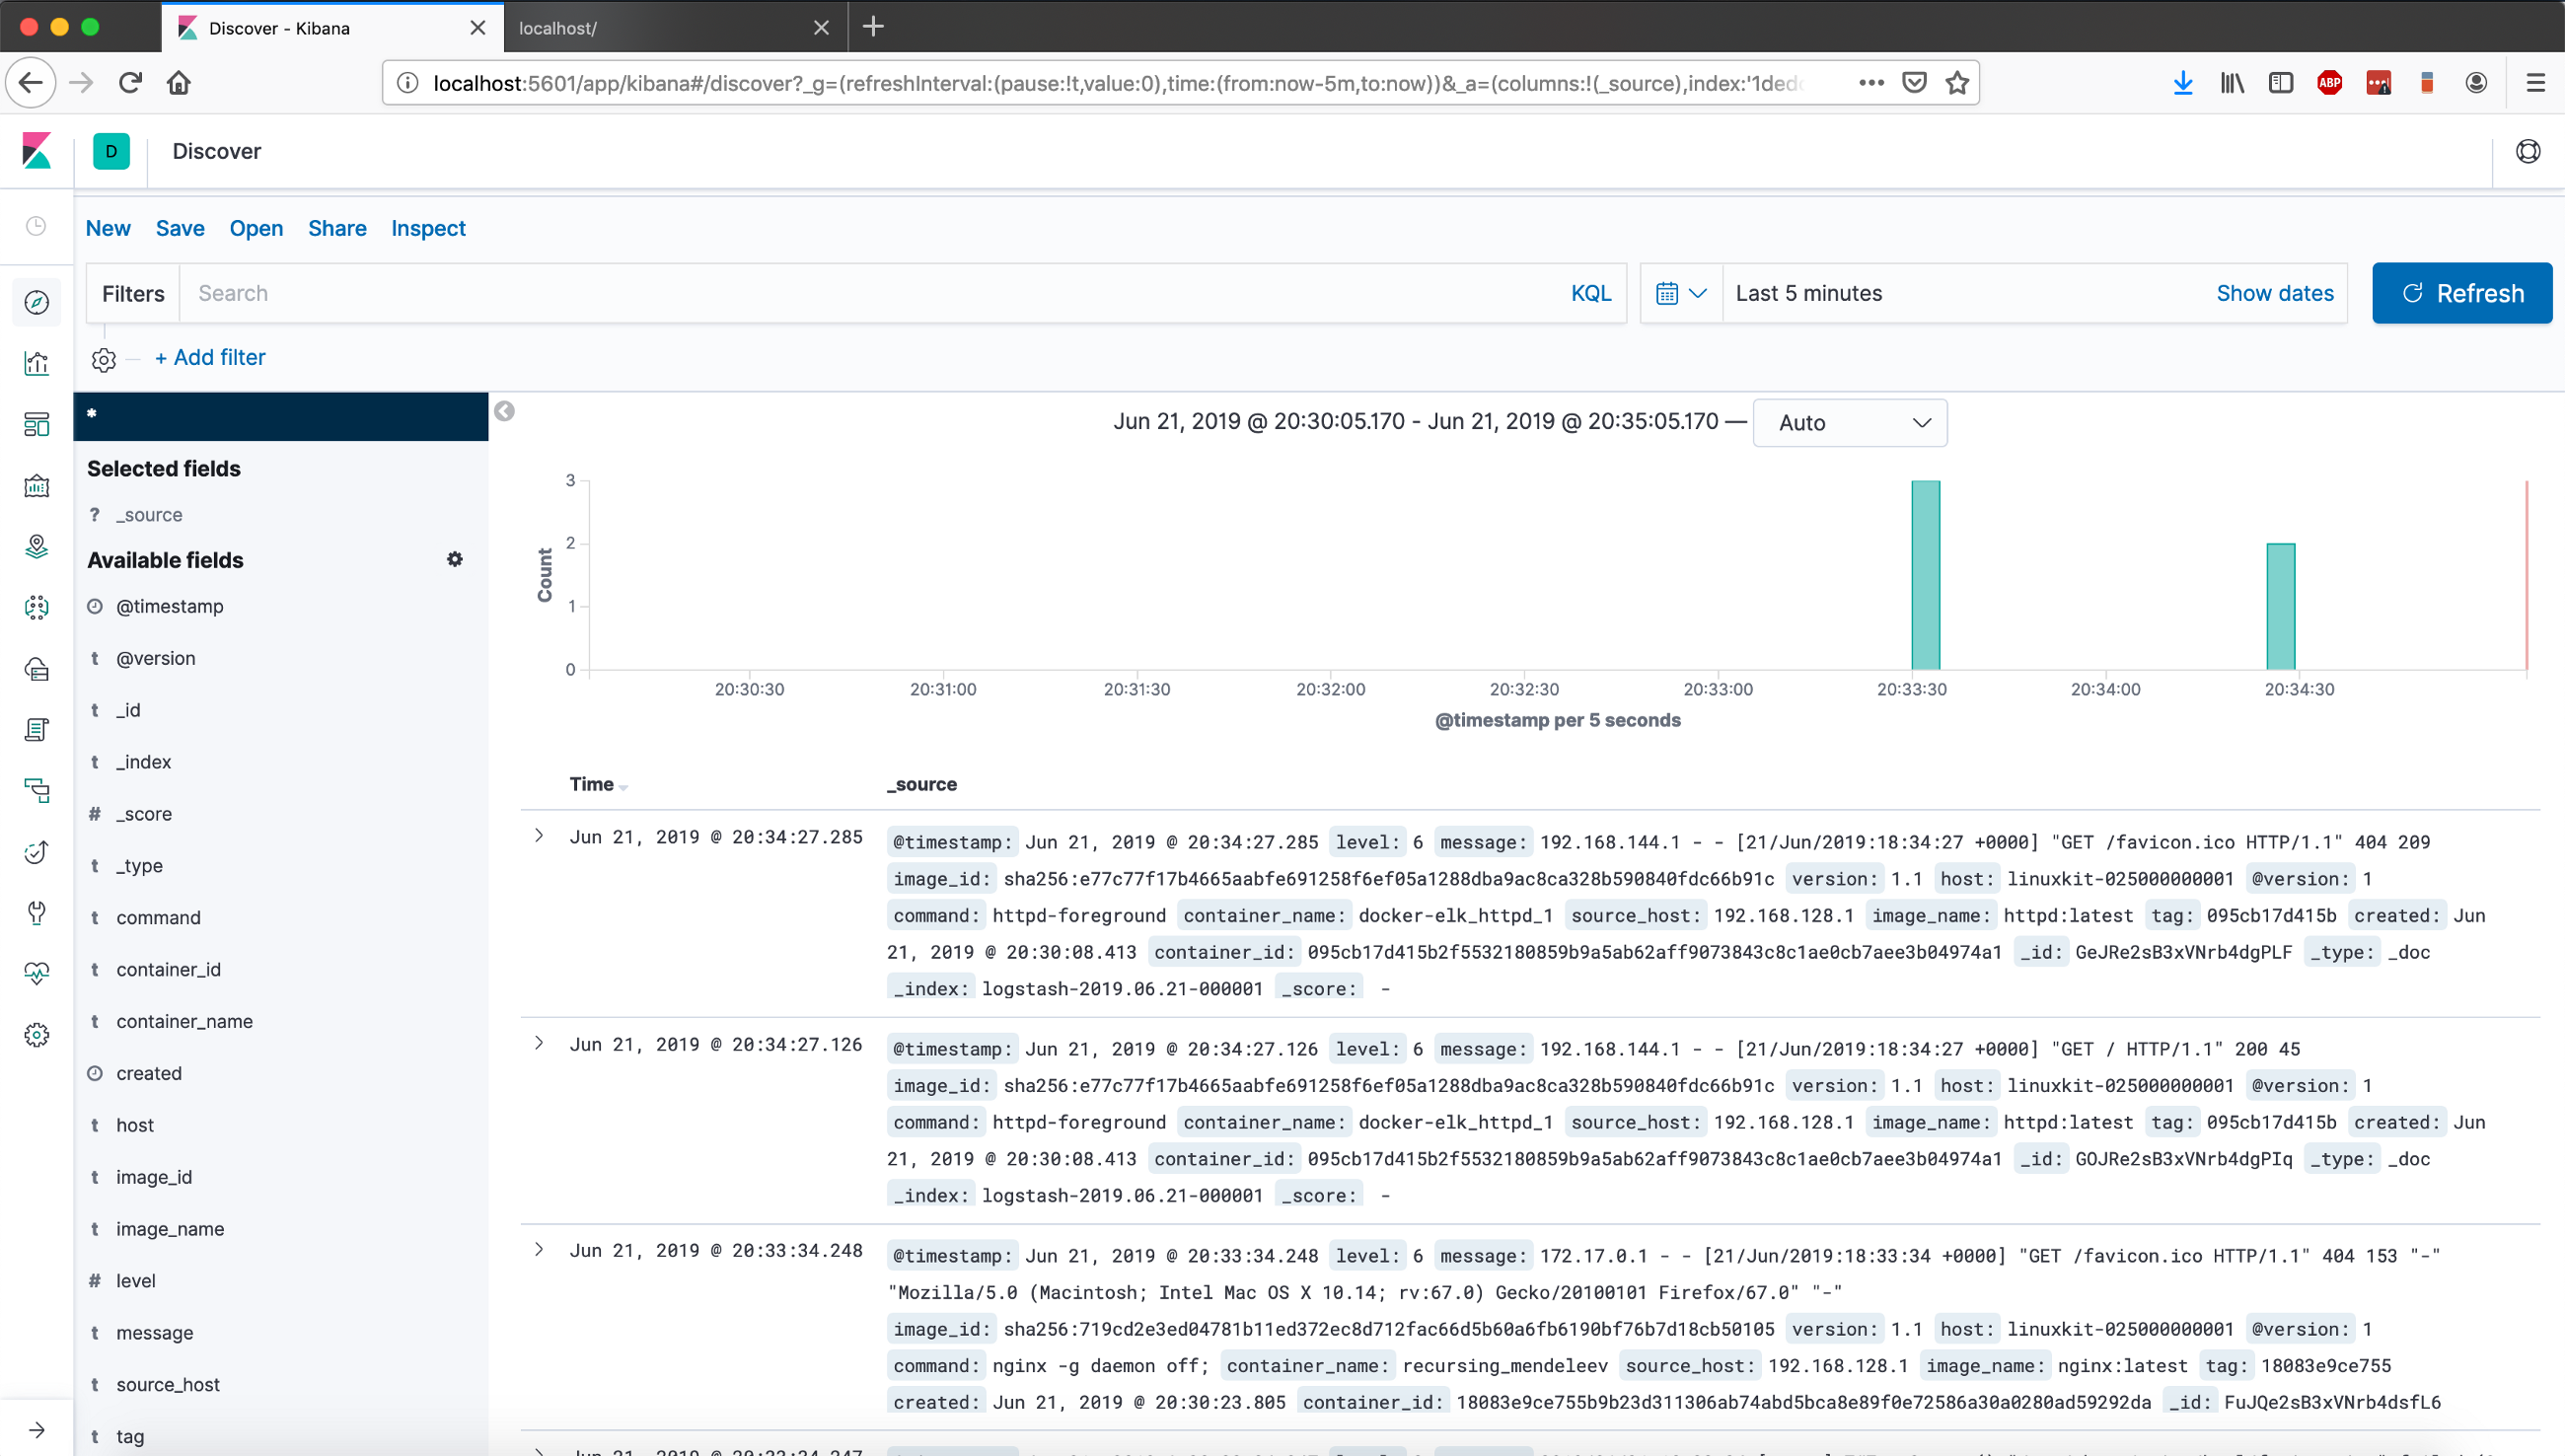 Deploy ELK stack in Docker to monitor containers